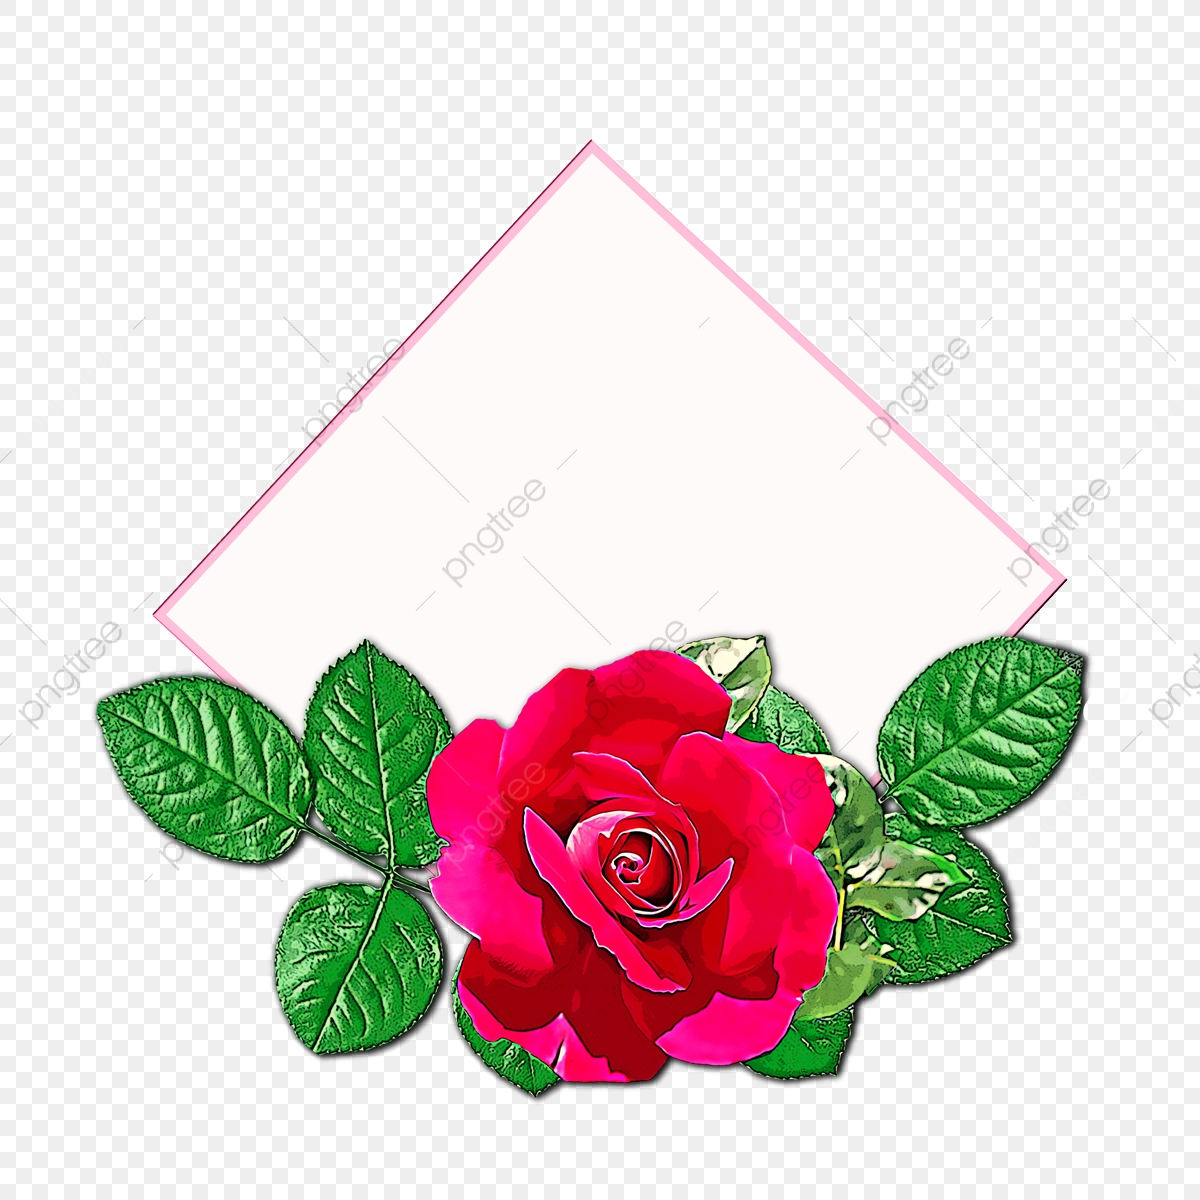 Painted flowers with red. Clipart rose natural